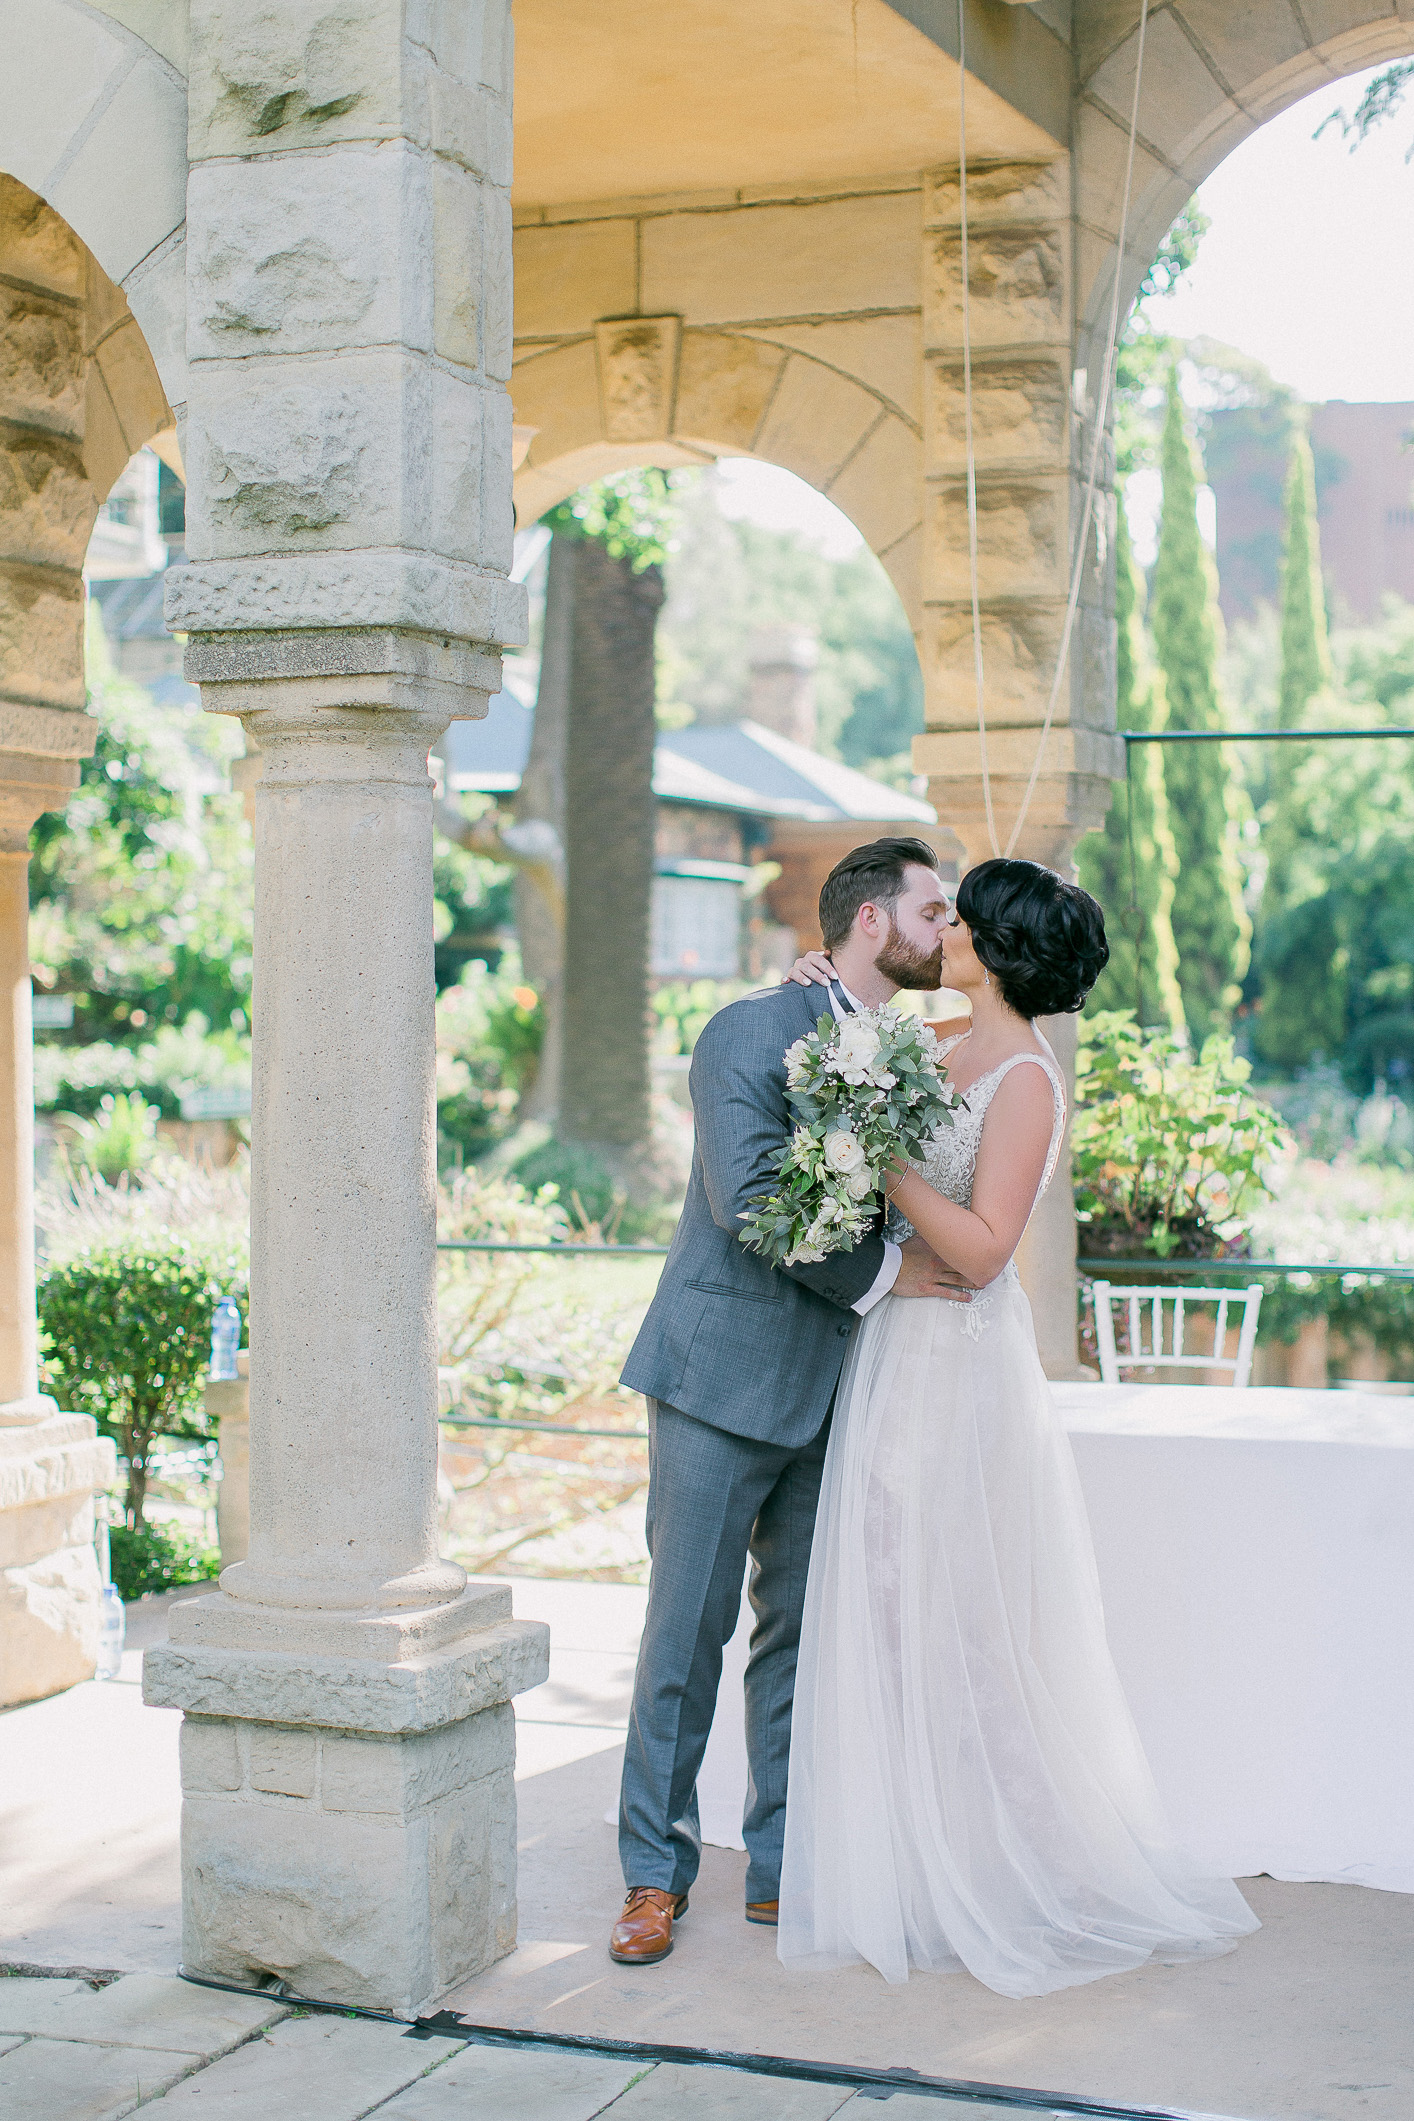 shepstone gardens wedding photographer 2017049.jpg